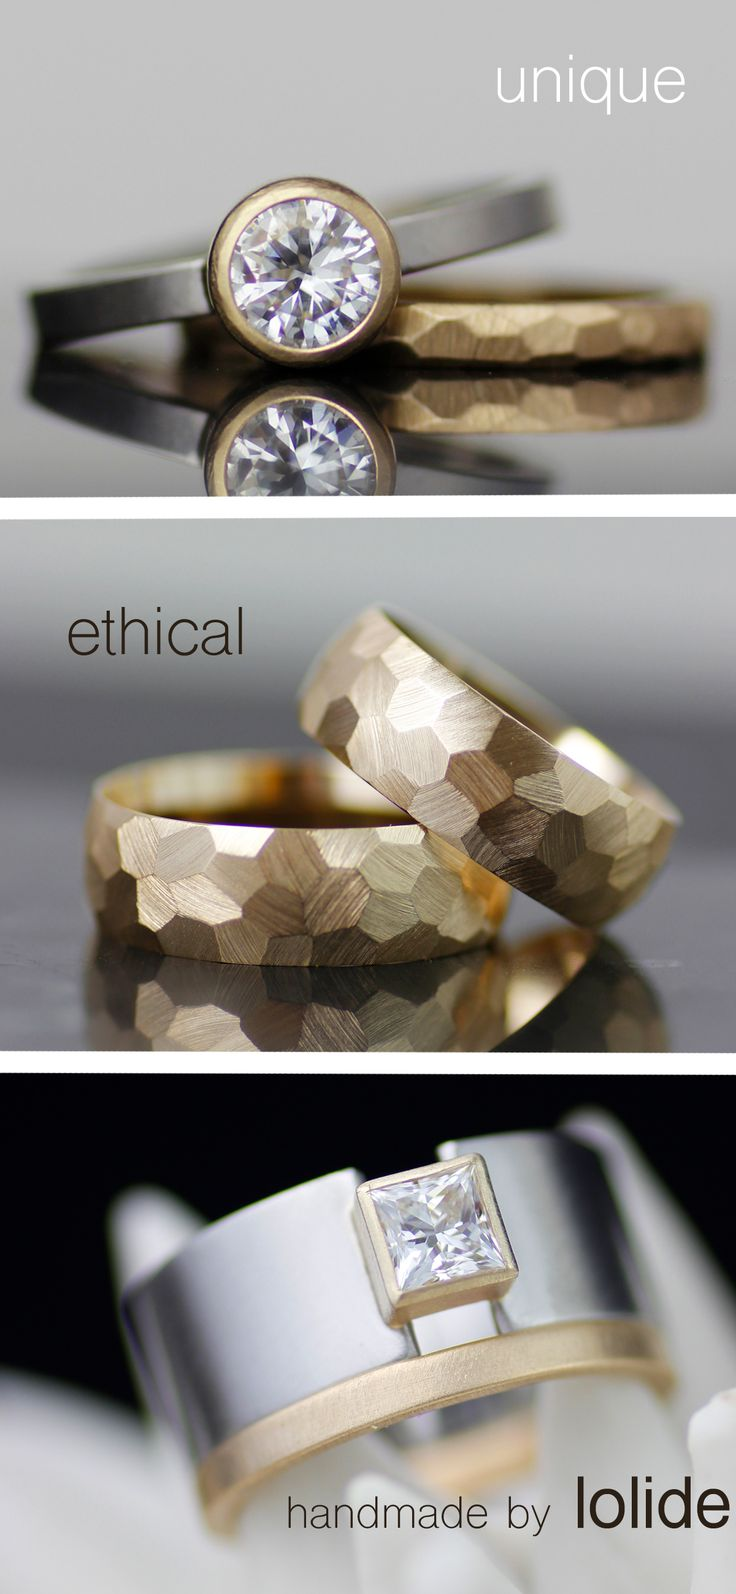 Modern wedding rings, custom made just for you. www.lolide.com